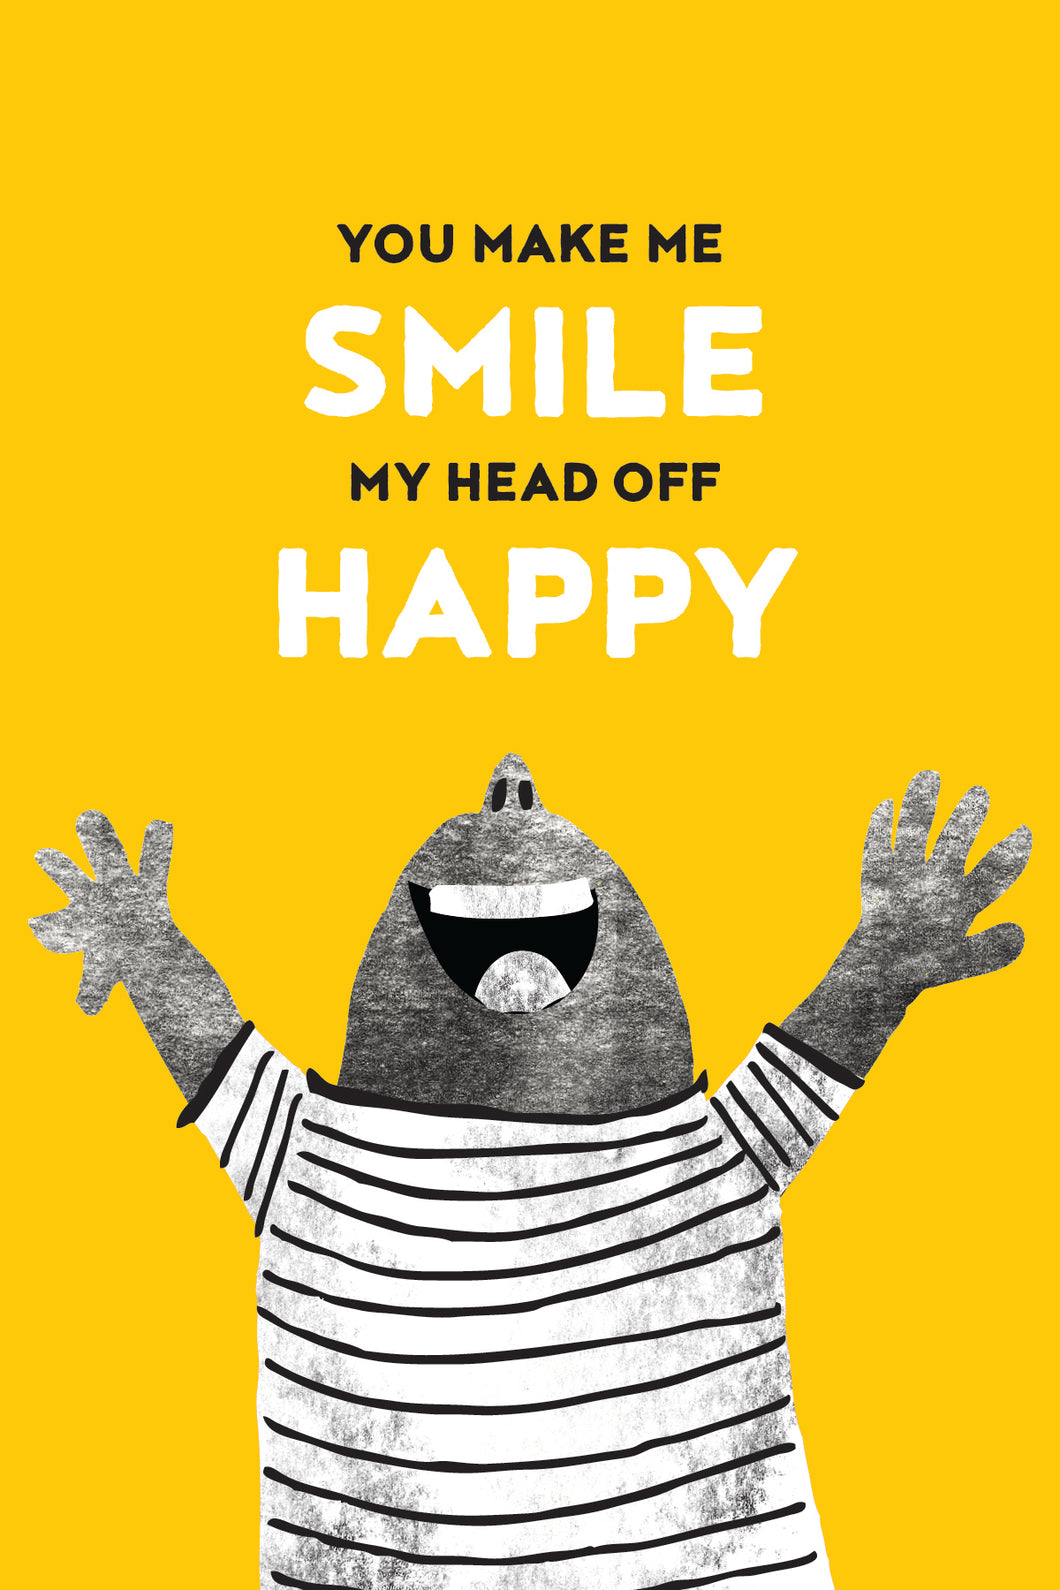 FATT - You Make Me Smile My Head Off Happy card